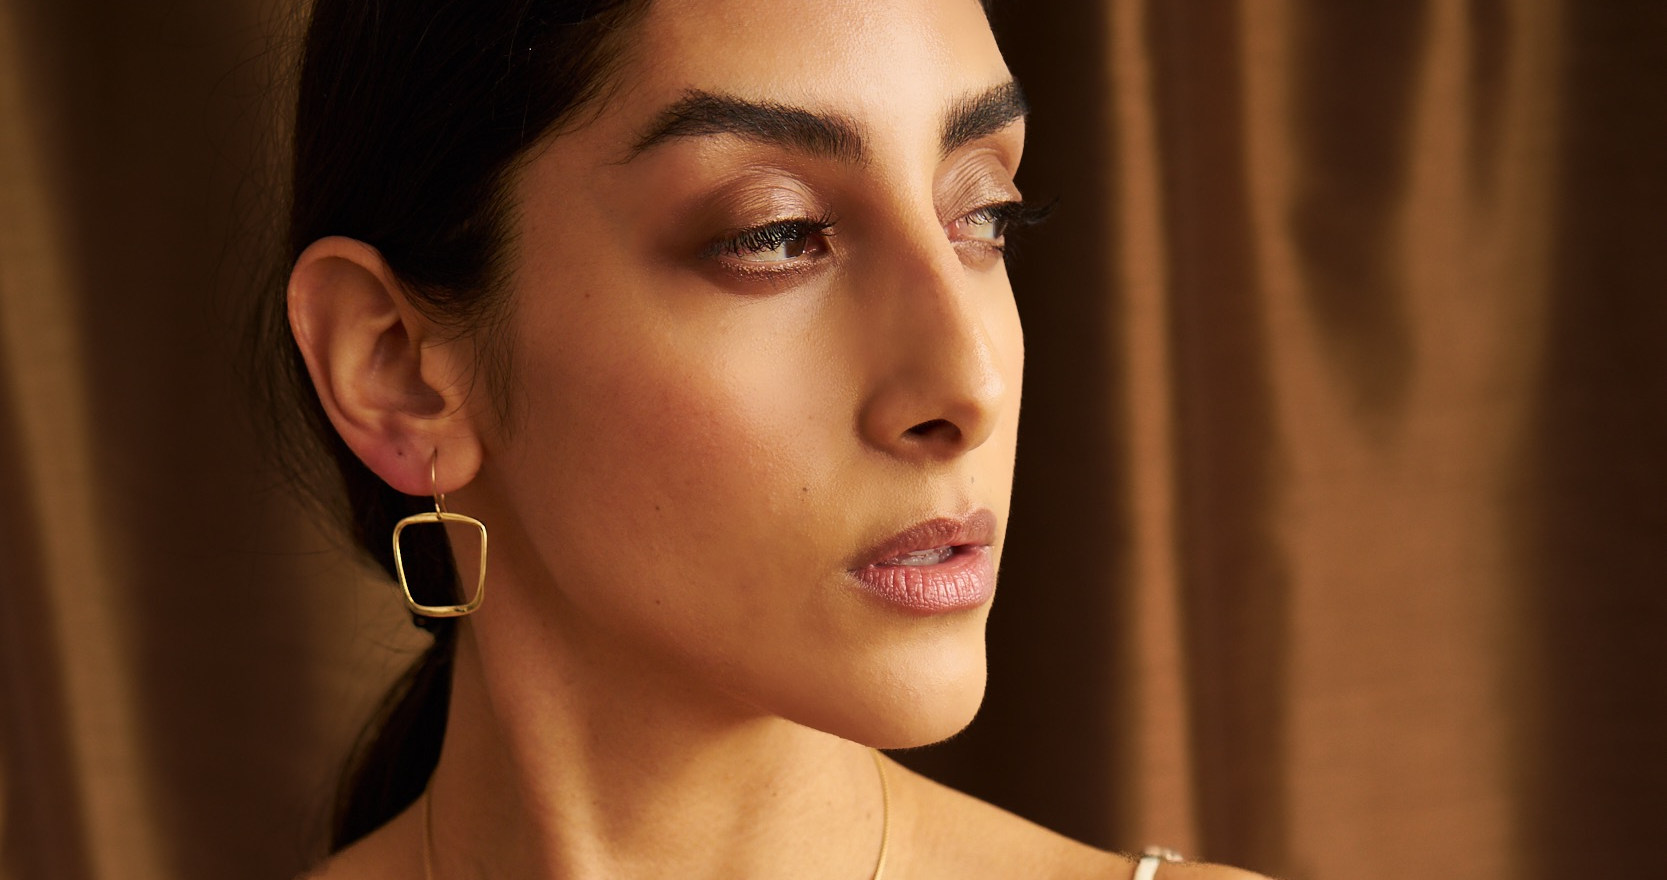 Melibe and Soft Square earrings